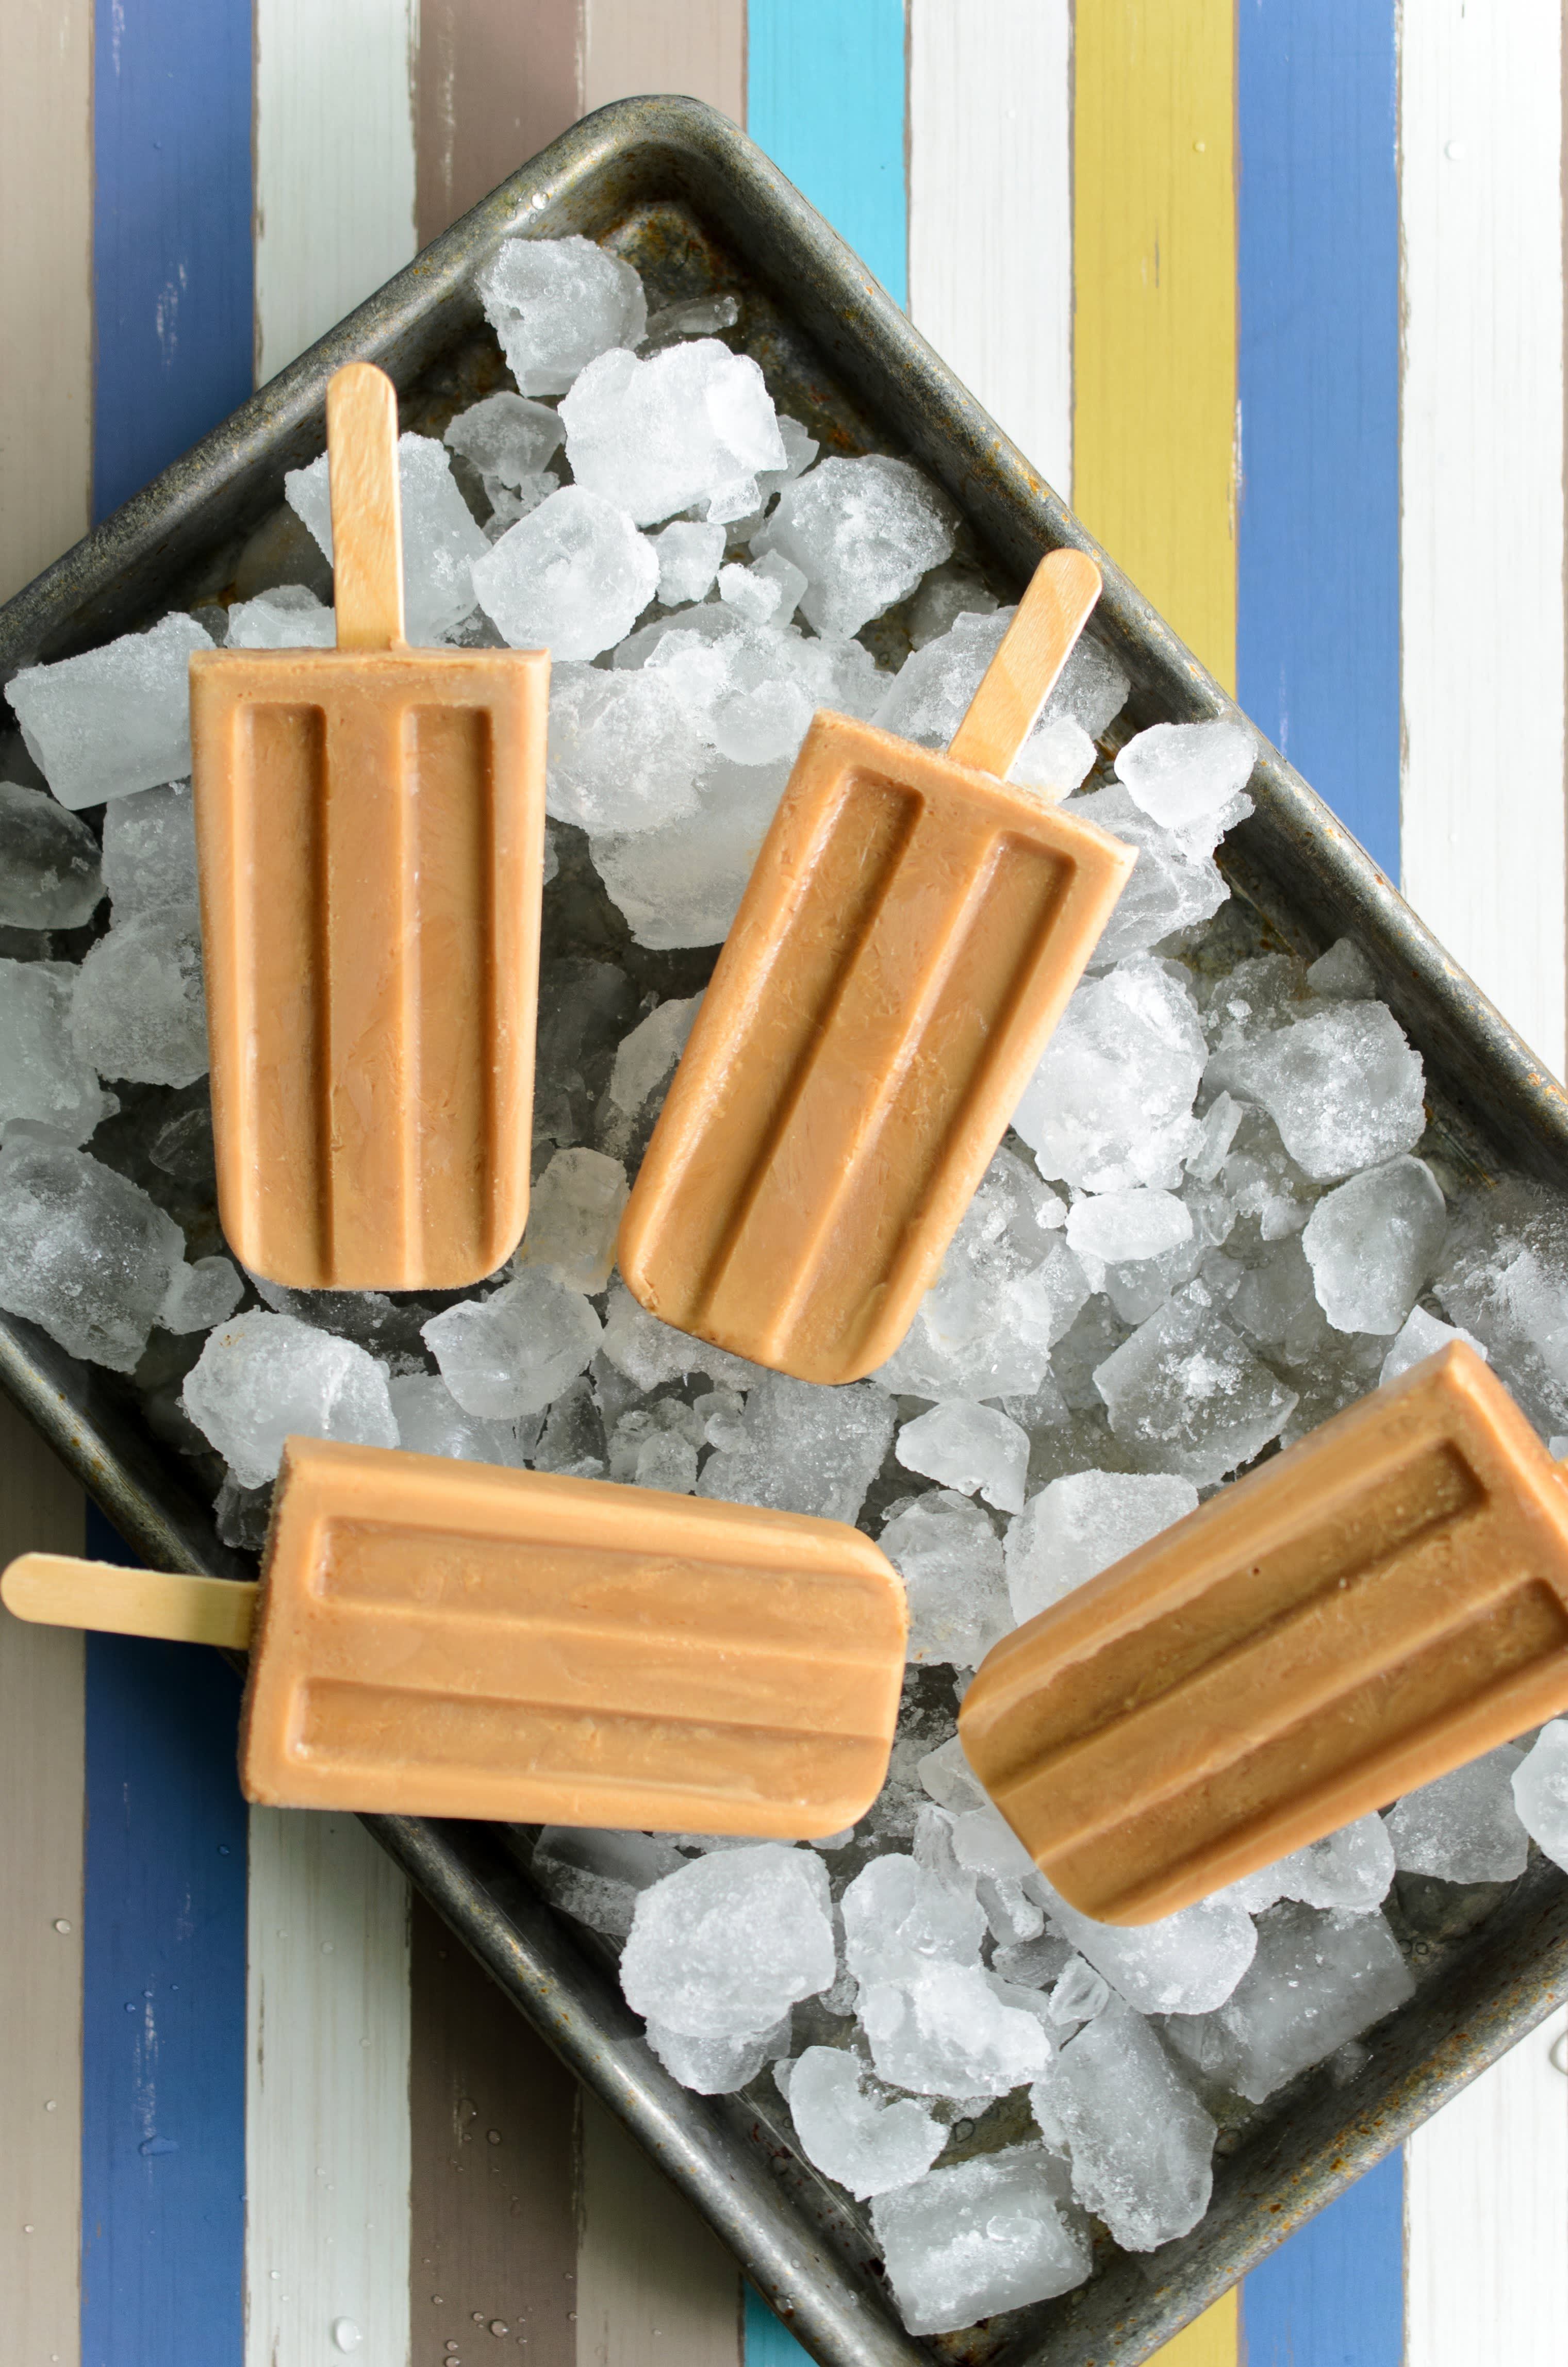 Masala chai creamsicles or popsicles